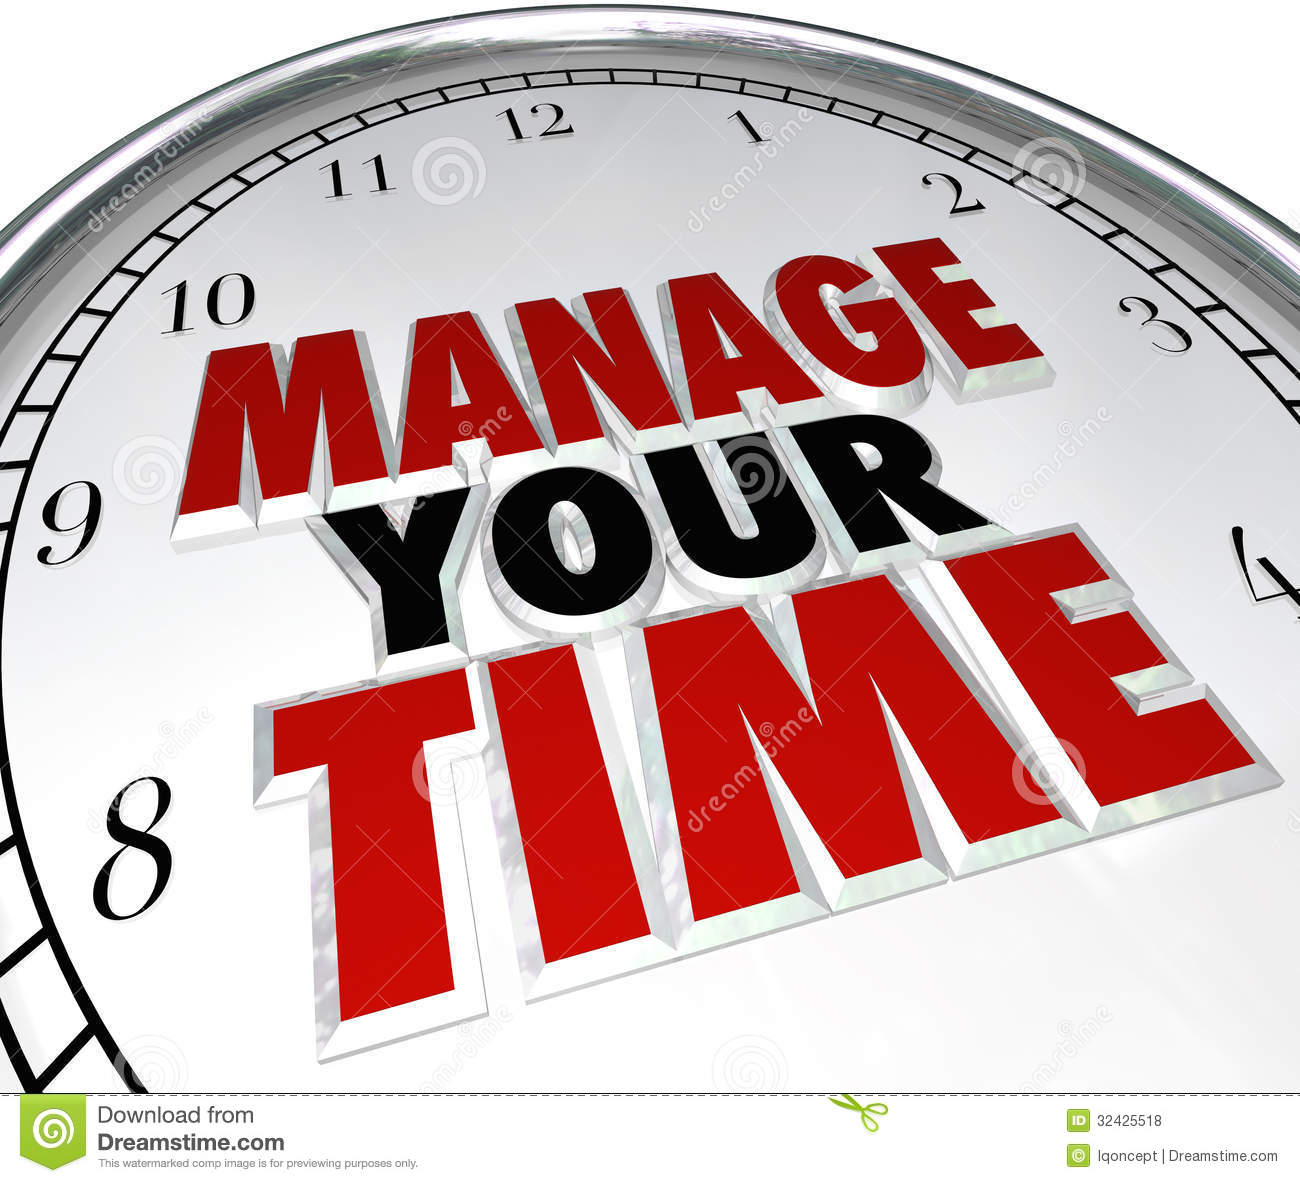 Manage Your Time Words Clock Management Efficiency Royalty Free Stock ...